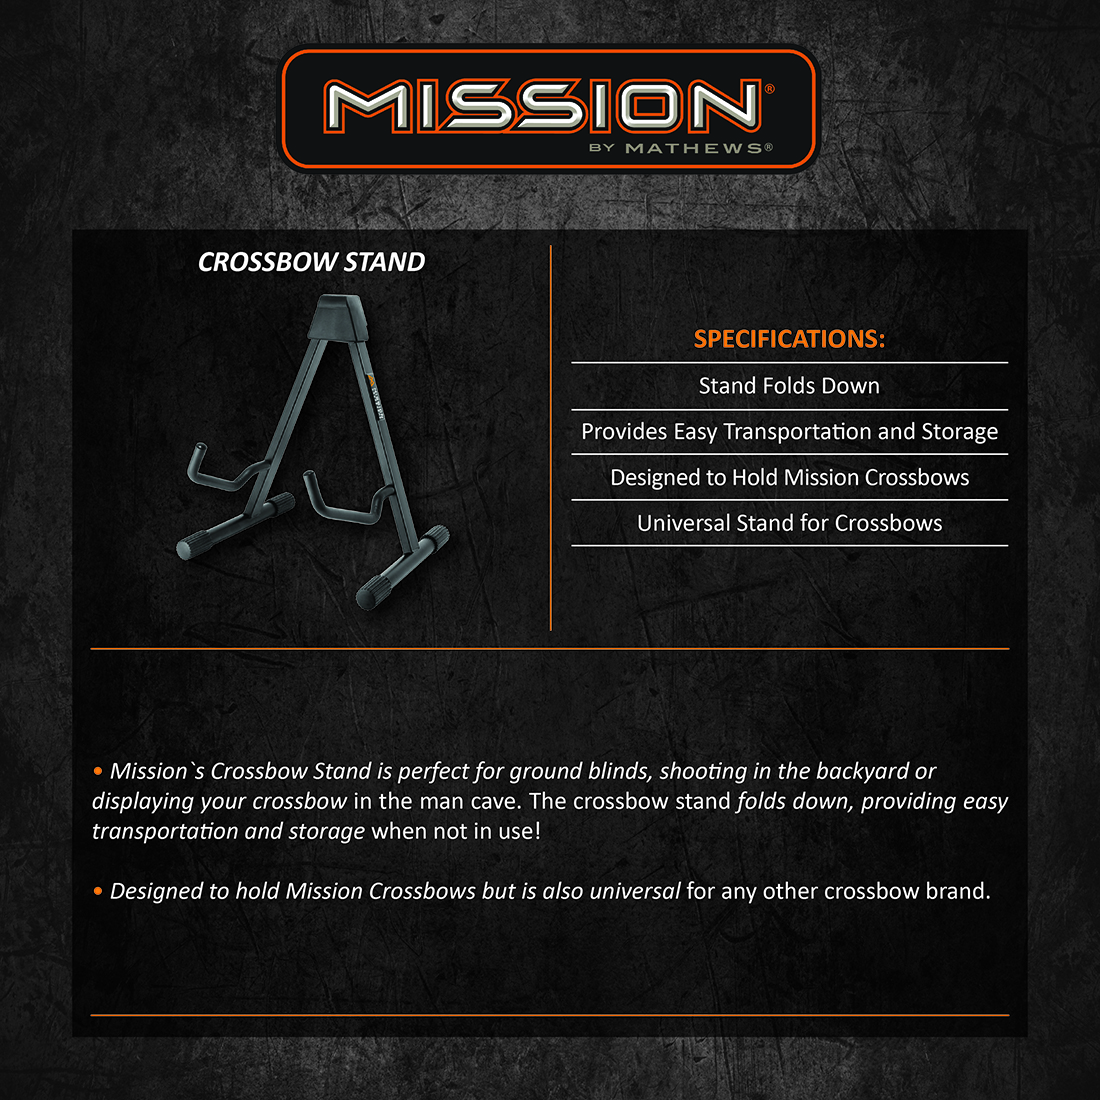 Mission Crossbow Stand Product Description